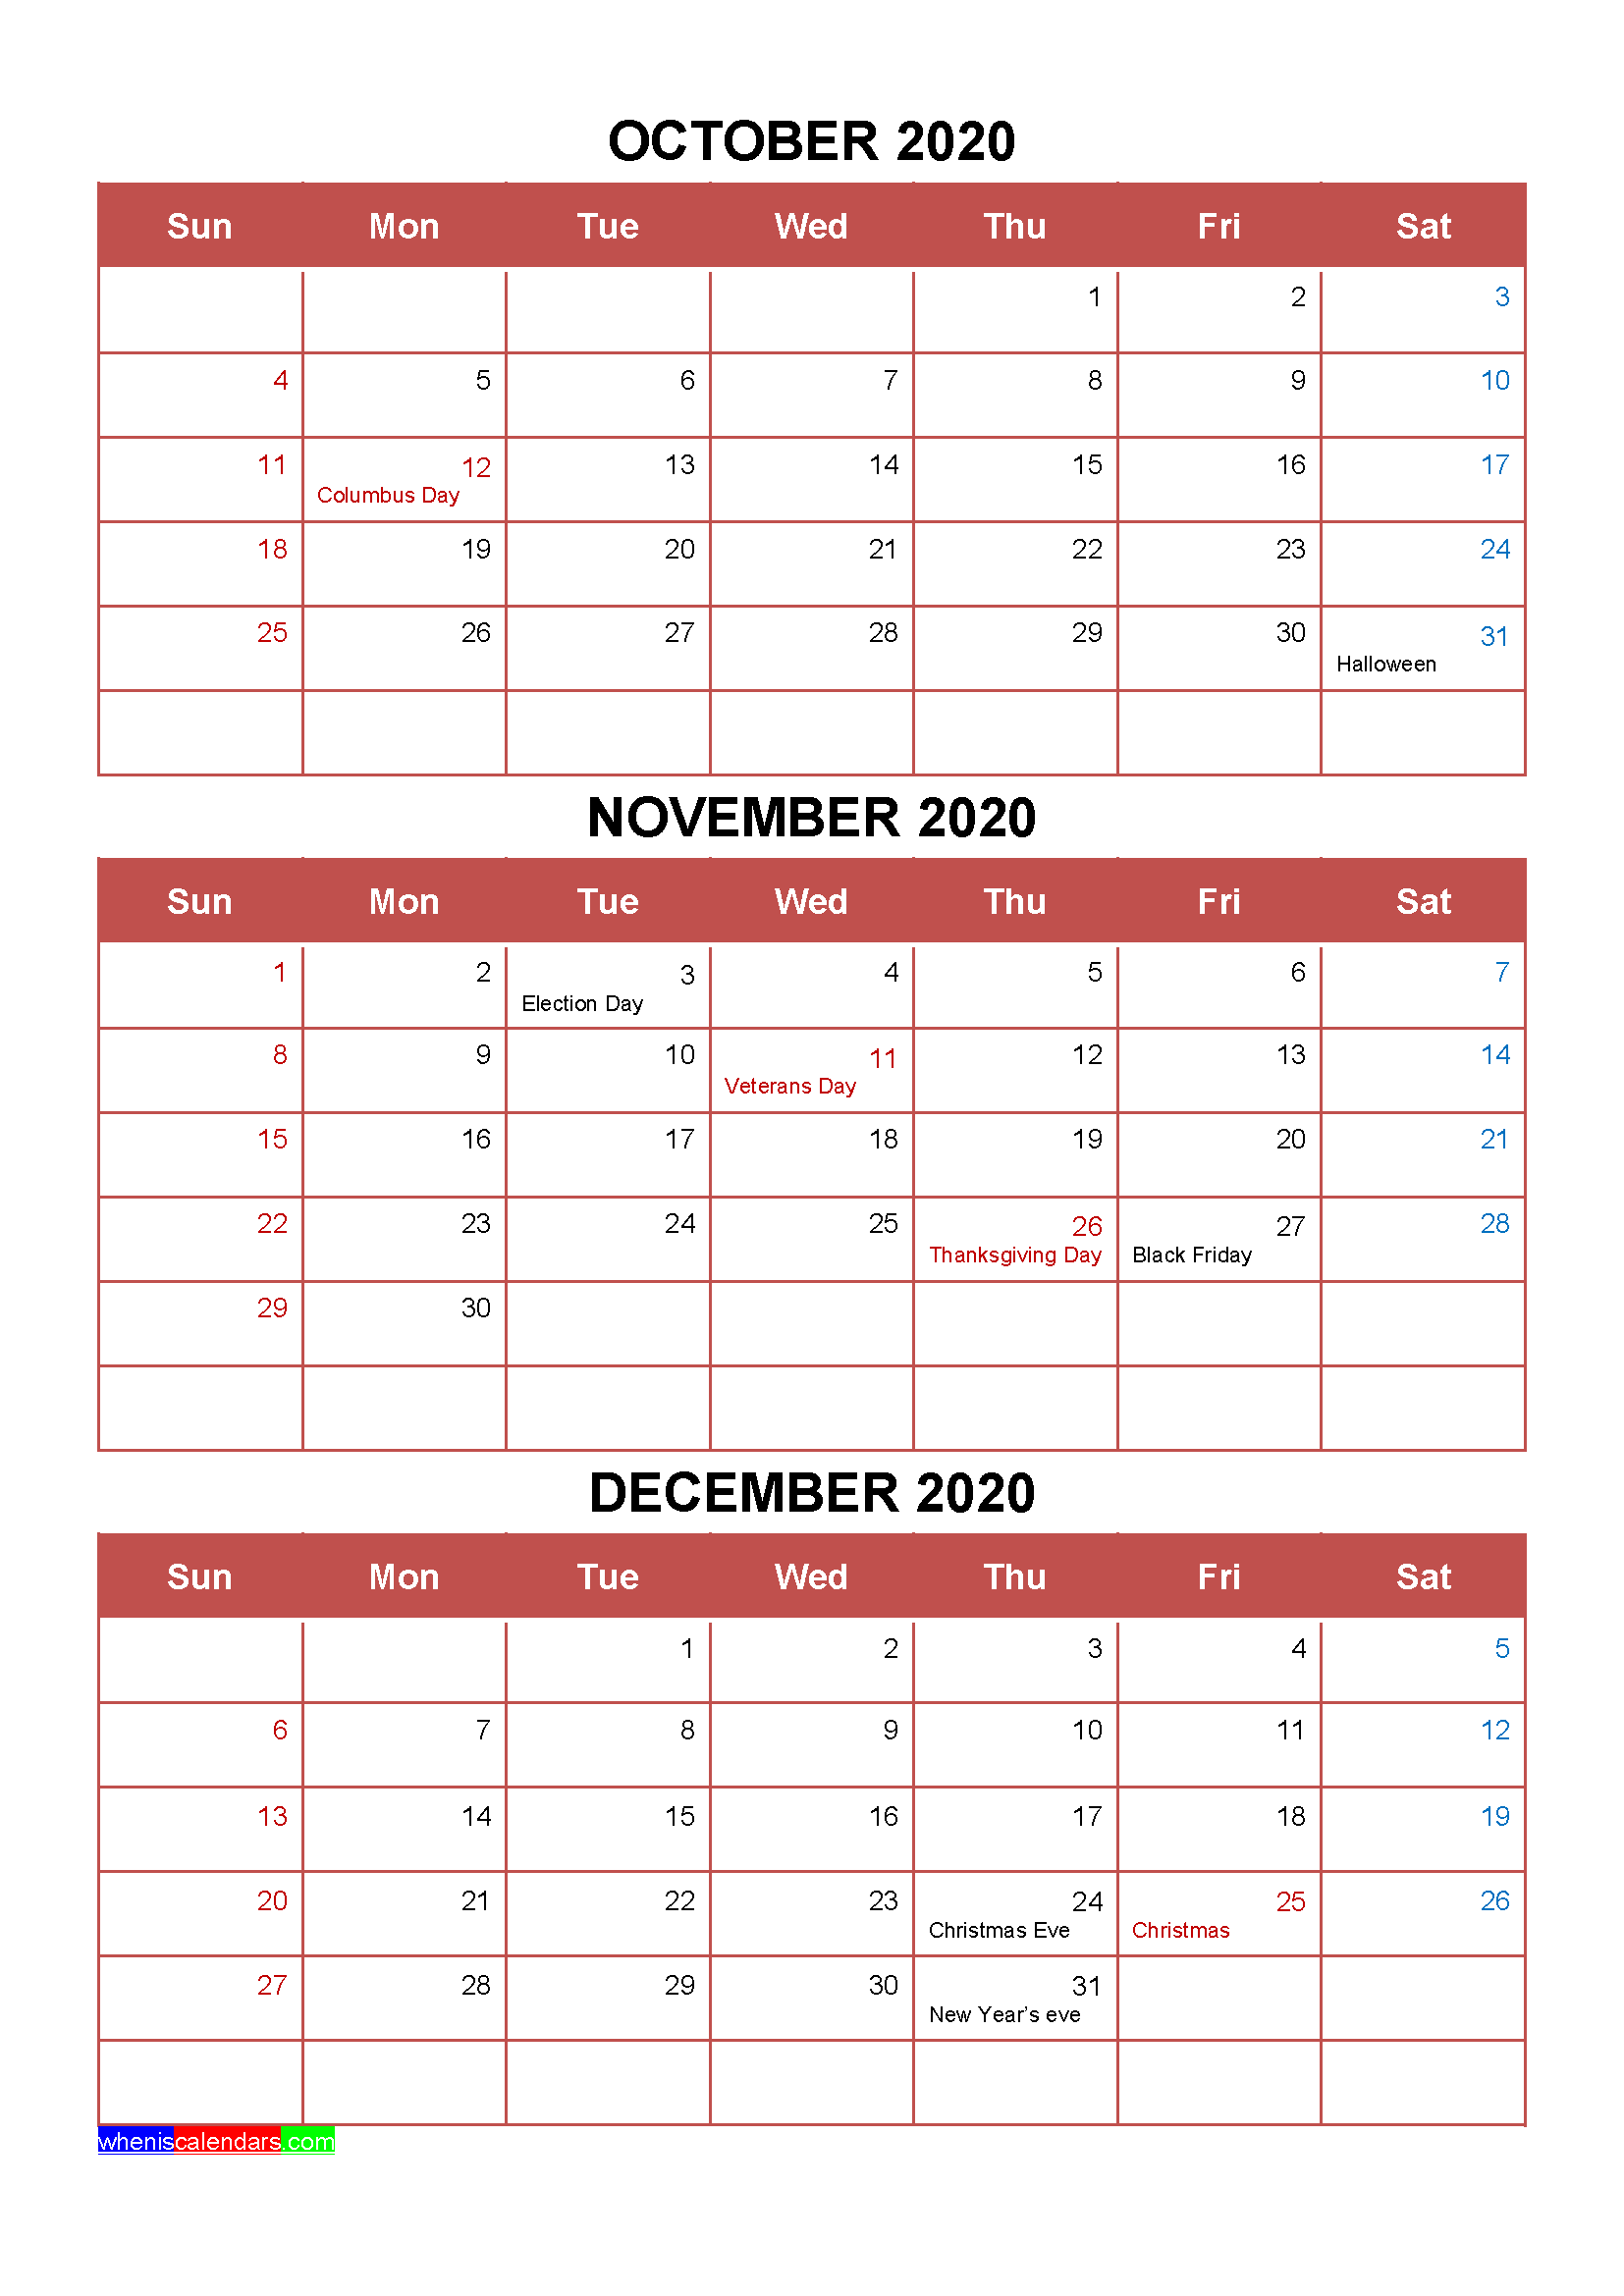 Free October November December 2020 Calendar with Holidays